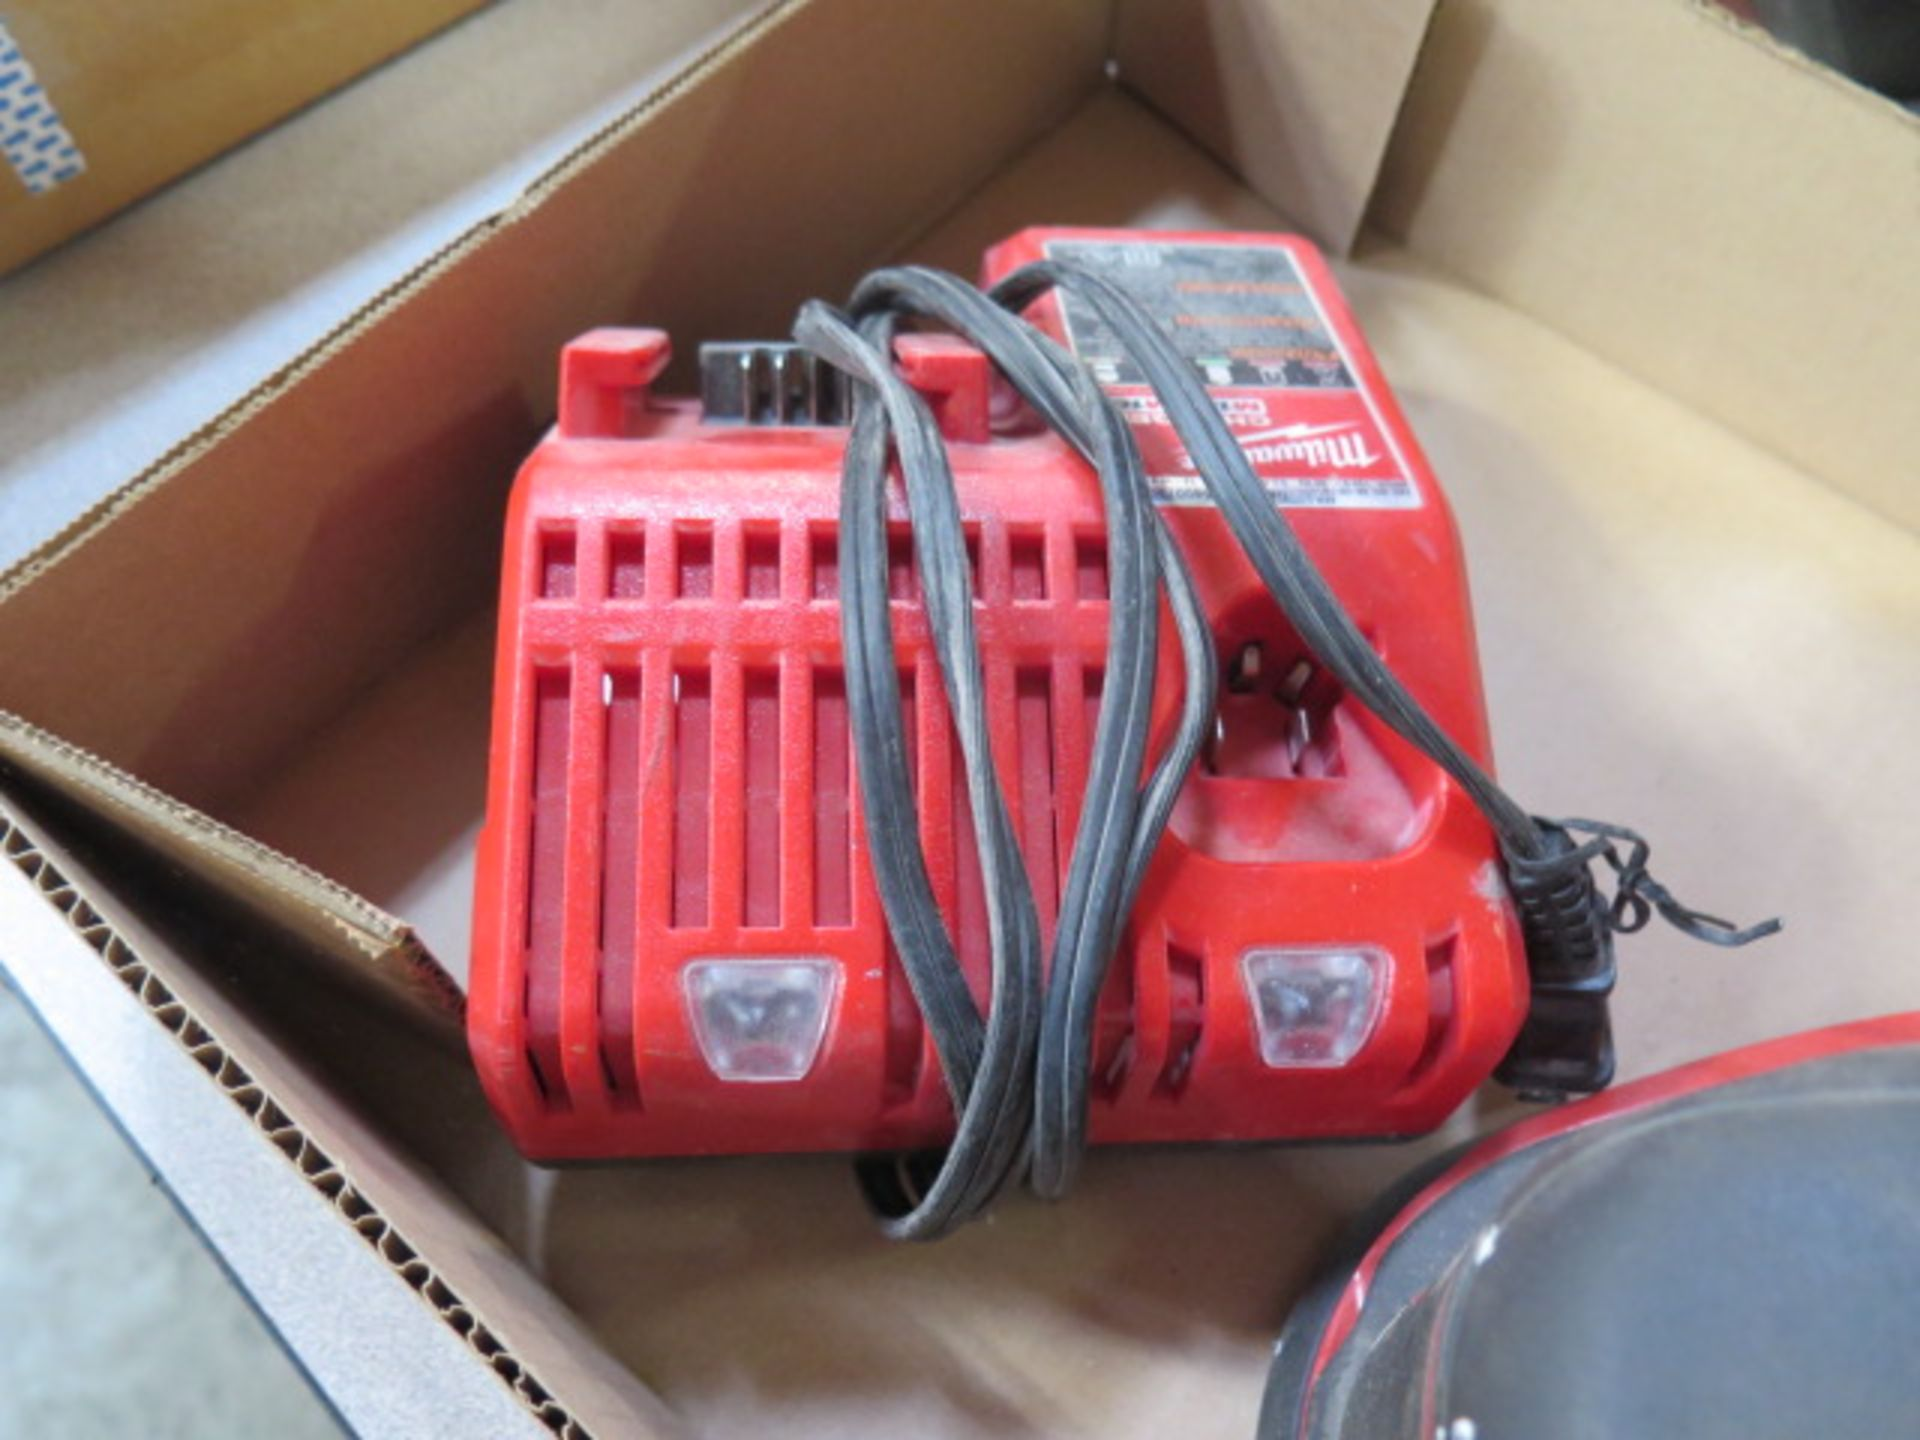 Milwaukee 18 Volt Orbital Sander w/ Charger (SOLD AS-IS - NO WARRANTY) - Image 6 of 6